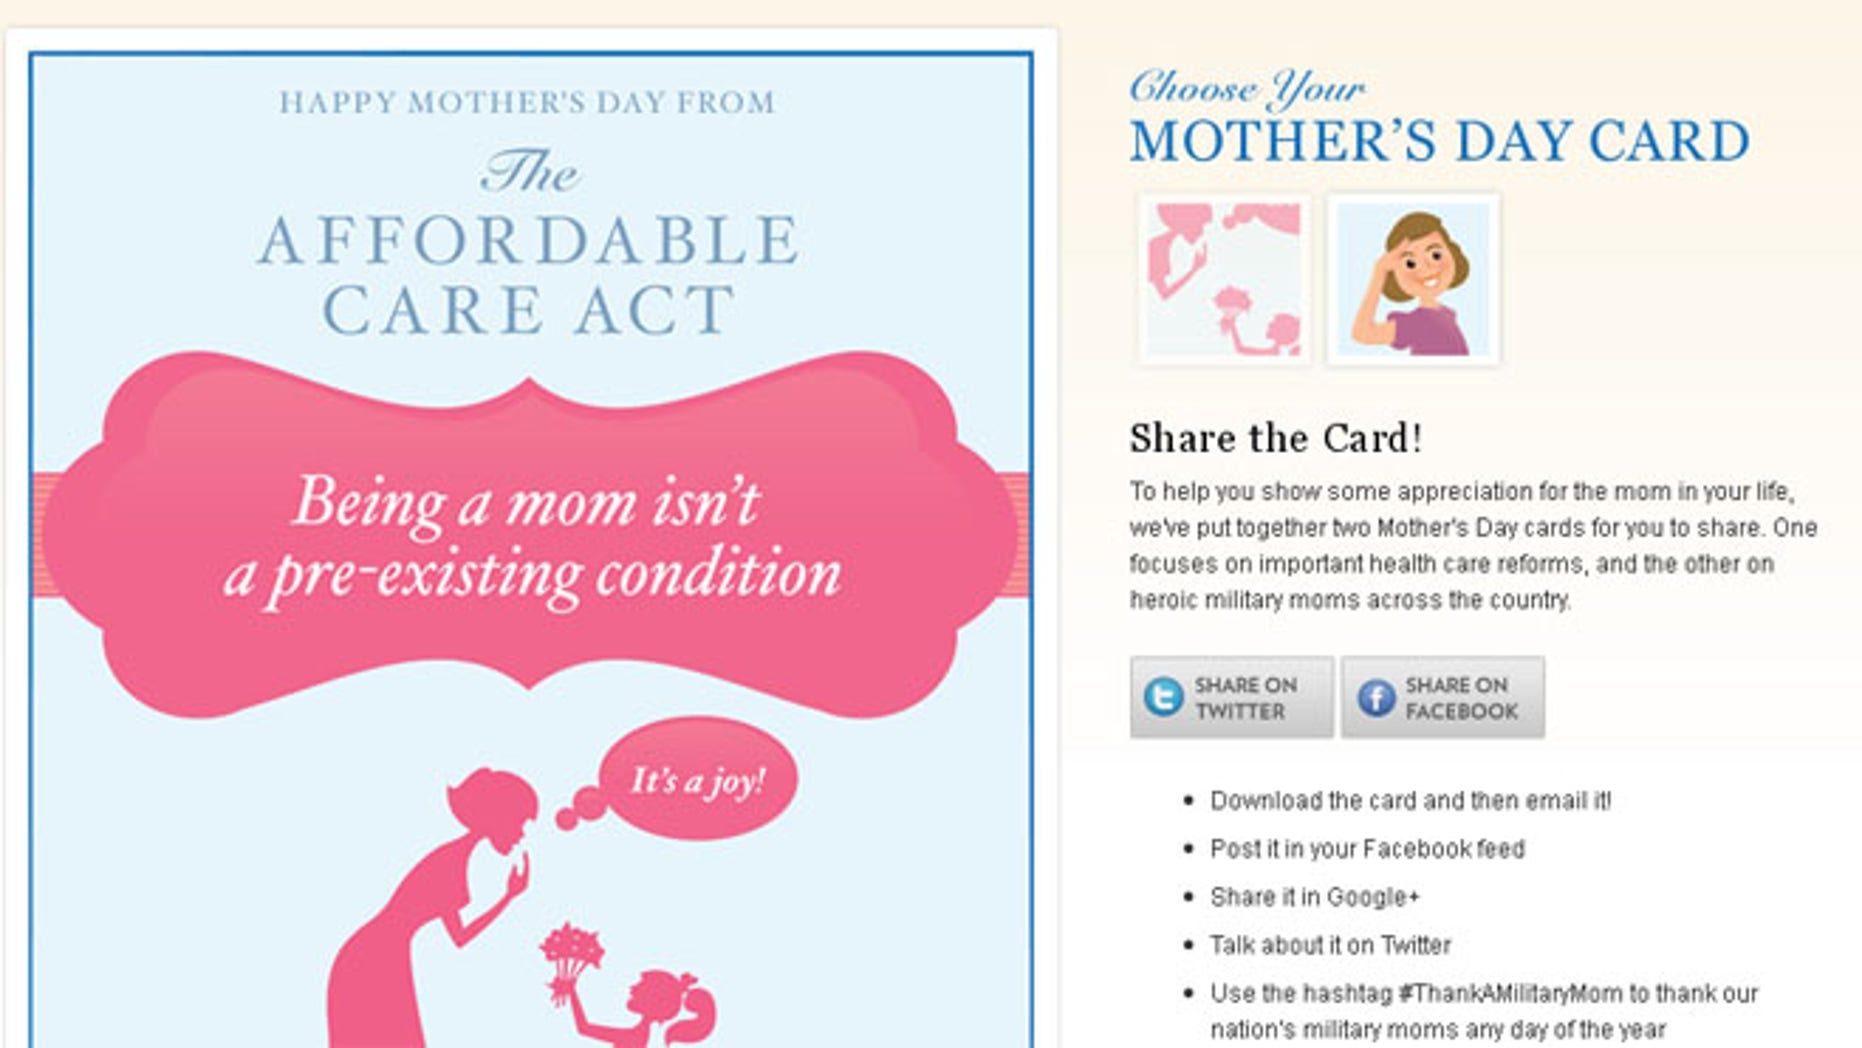 Shown here is a Mother's Day e-card produced by the White House.